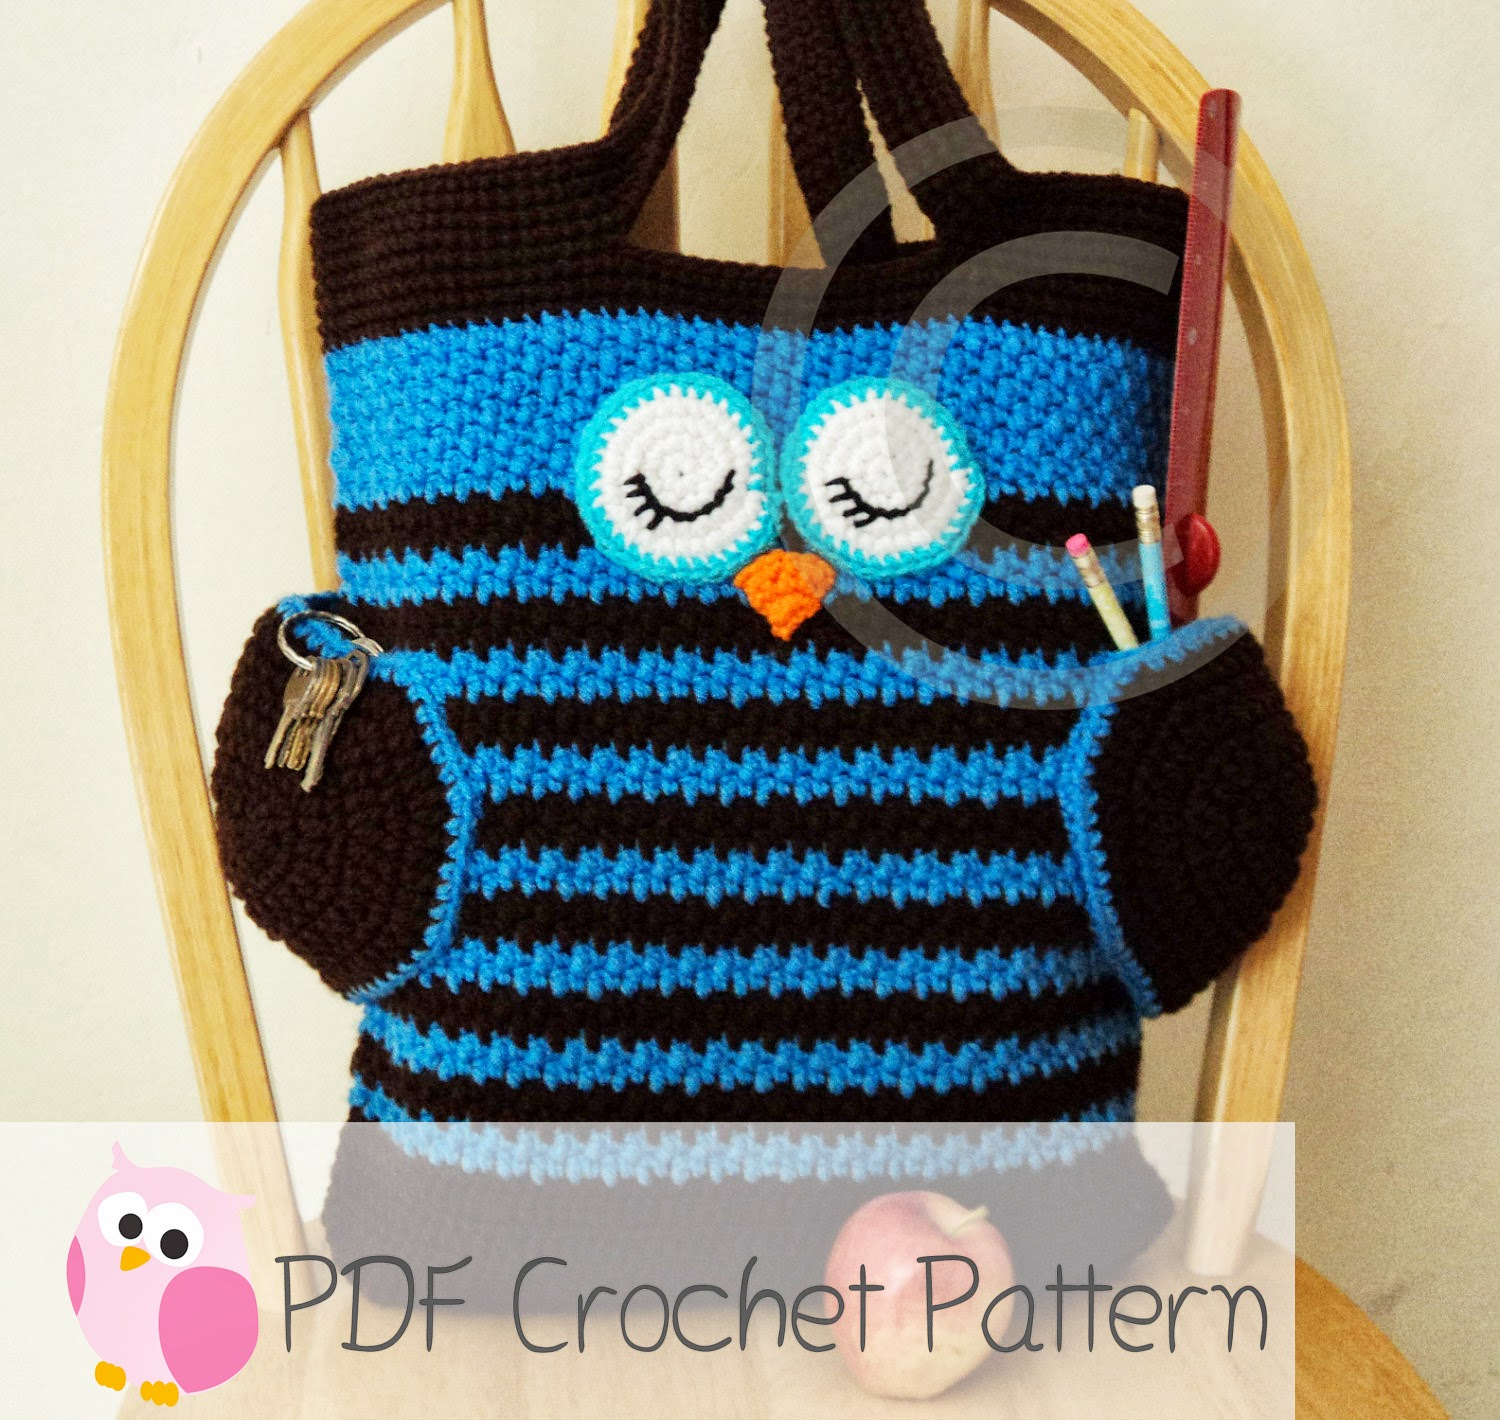 Cute Little Crafts: Crochet Pattern:Sleepy Owl Tote Bag